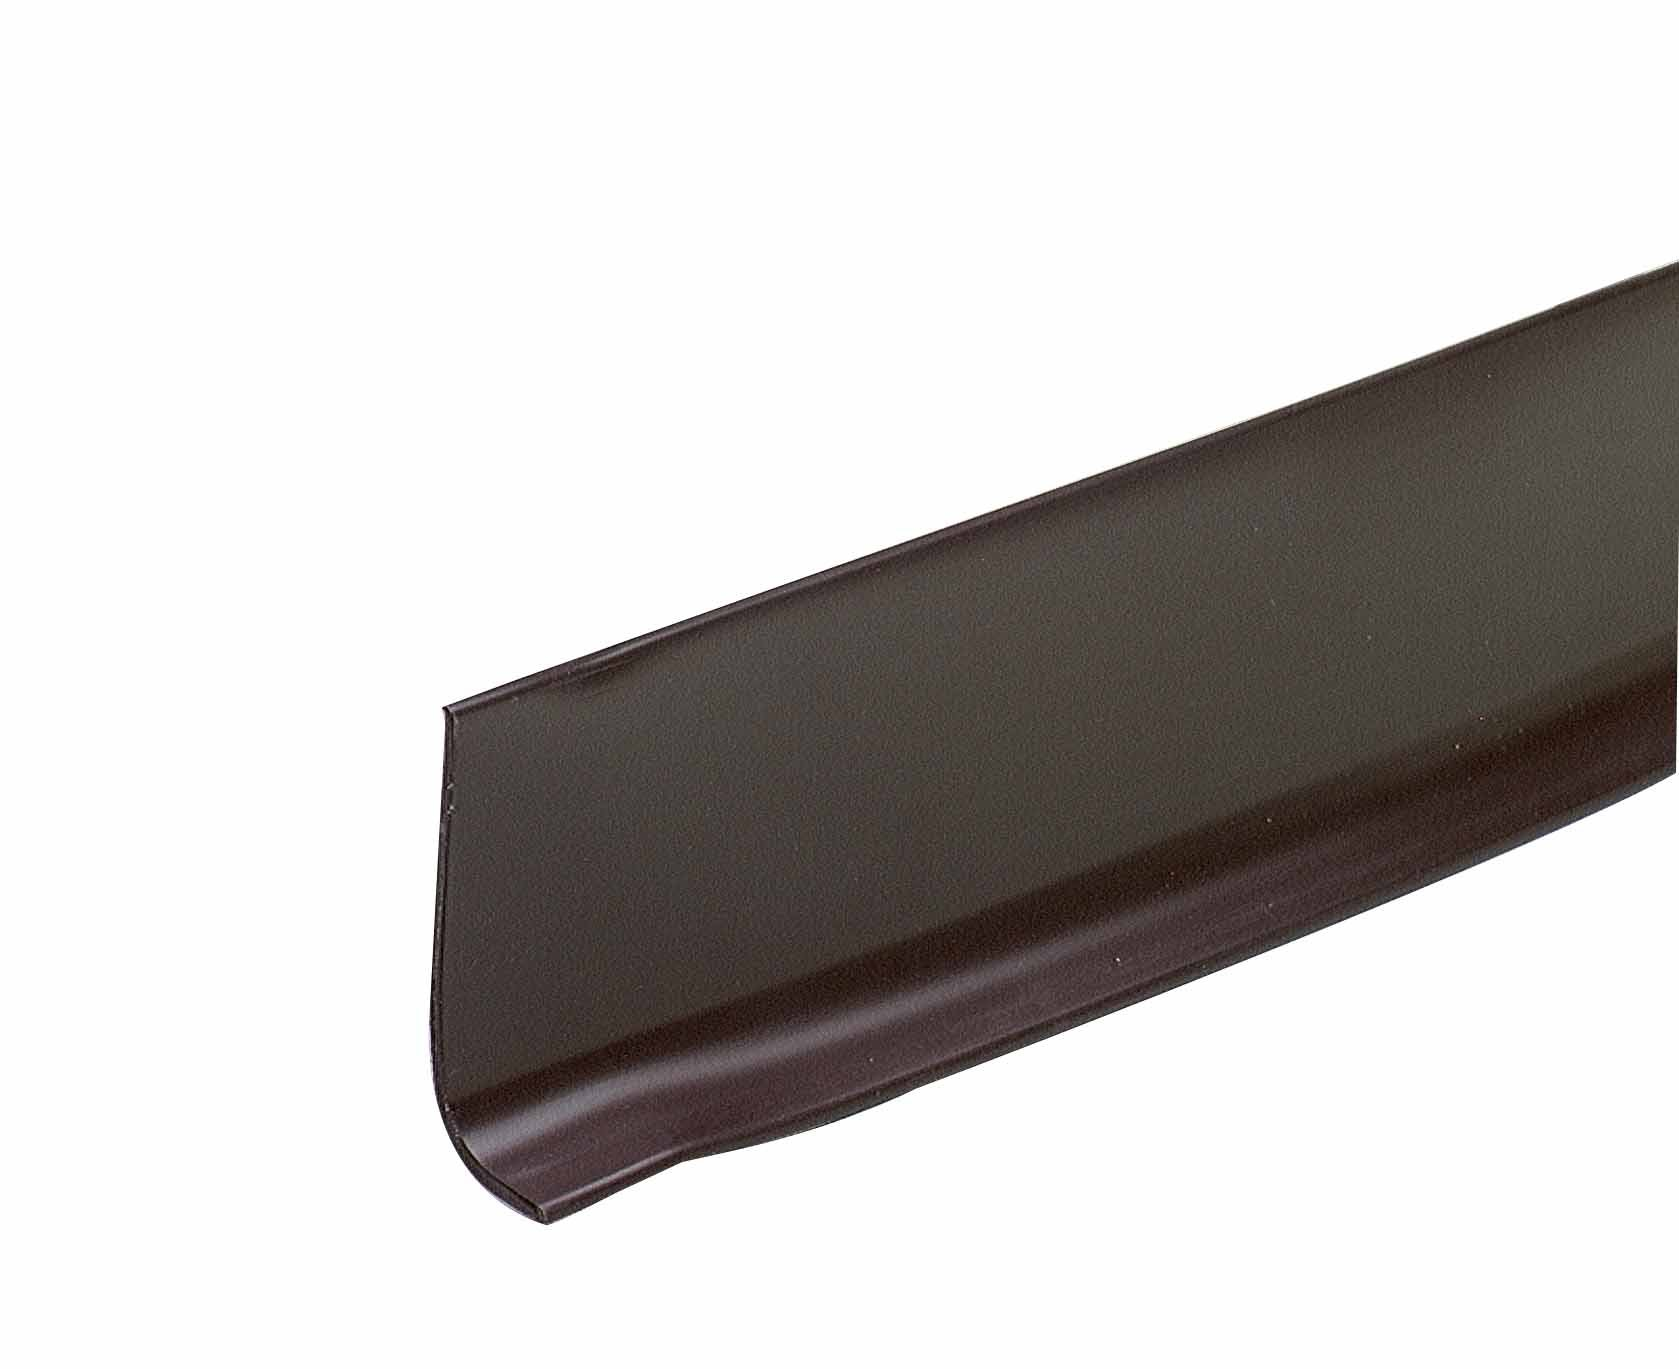 M-D Building Products 75903 M-D Wall Base, 120 Ft L X 2-1/2 in W, Vinyl, Brown by M-D Building Products